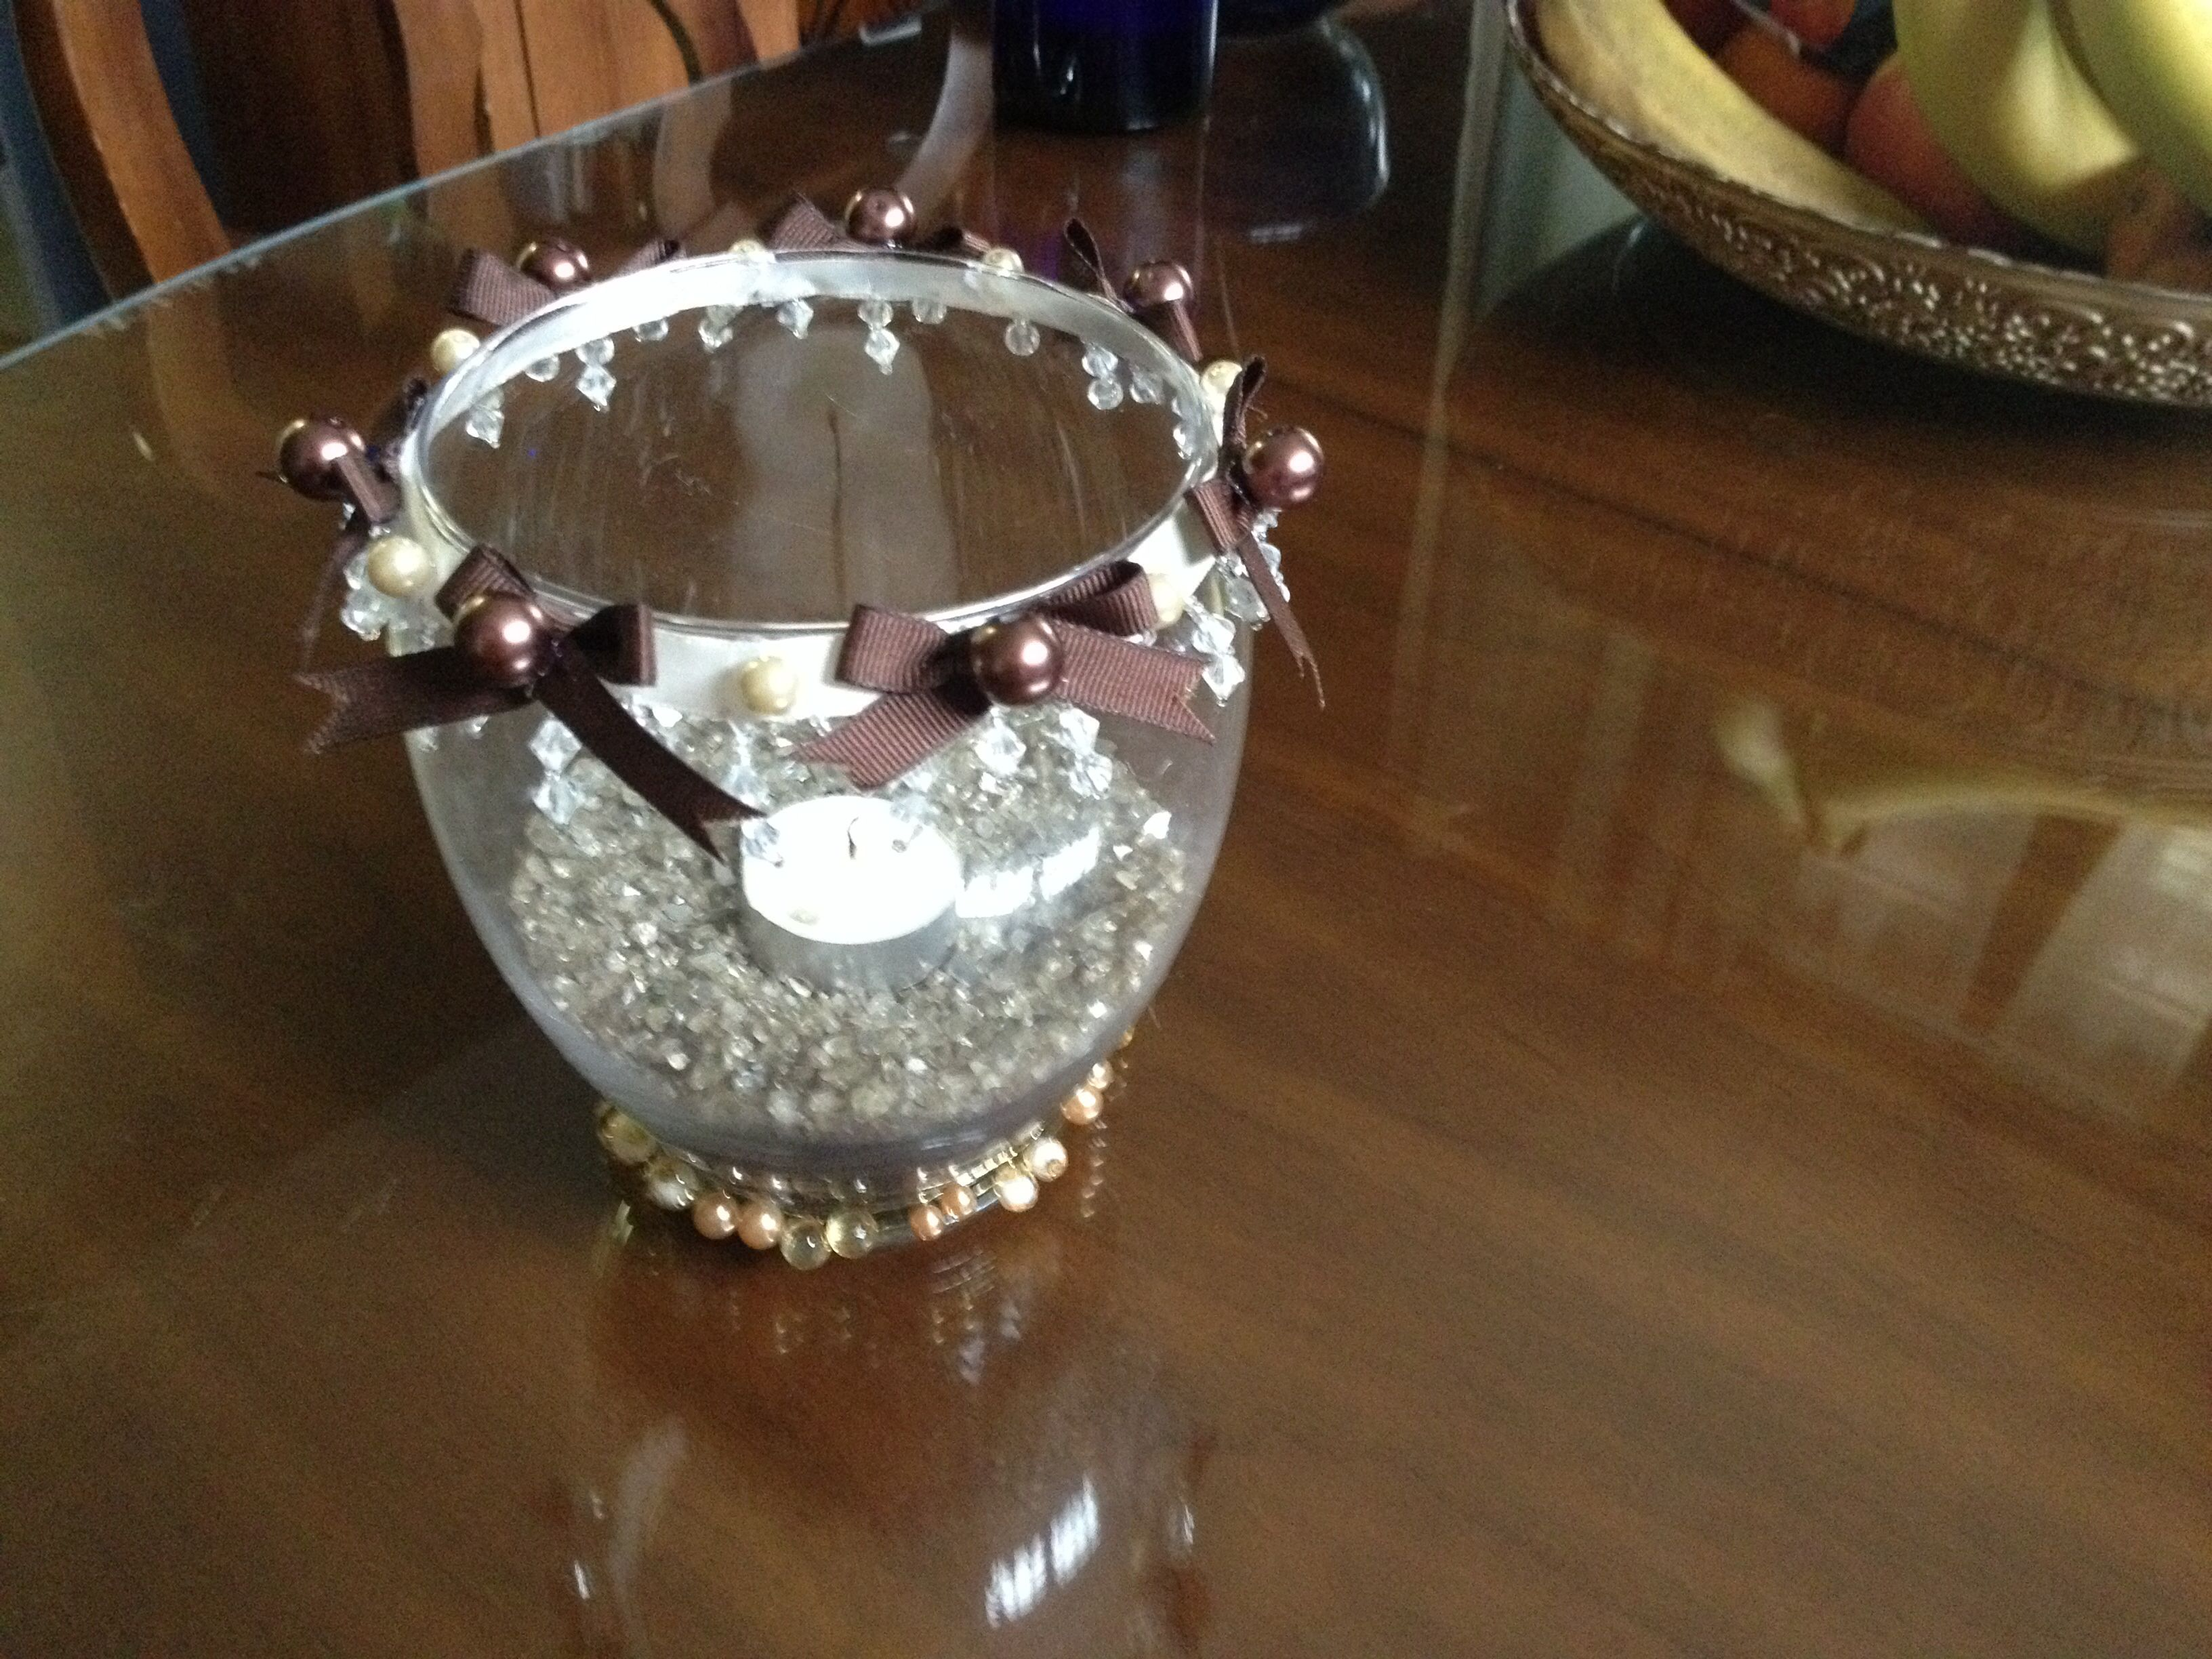 Round glass vase with beaded fringe around the top brown ribbon round glass vase with beaded fringe around the top brown ribbon bows glued in between champagne glass beads brown glass beads in the centre of each bow reviewsmspy